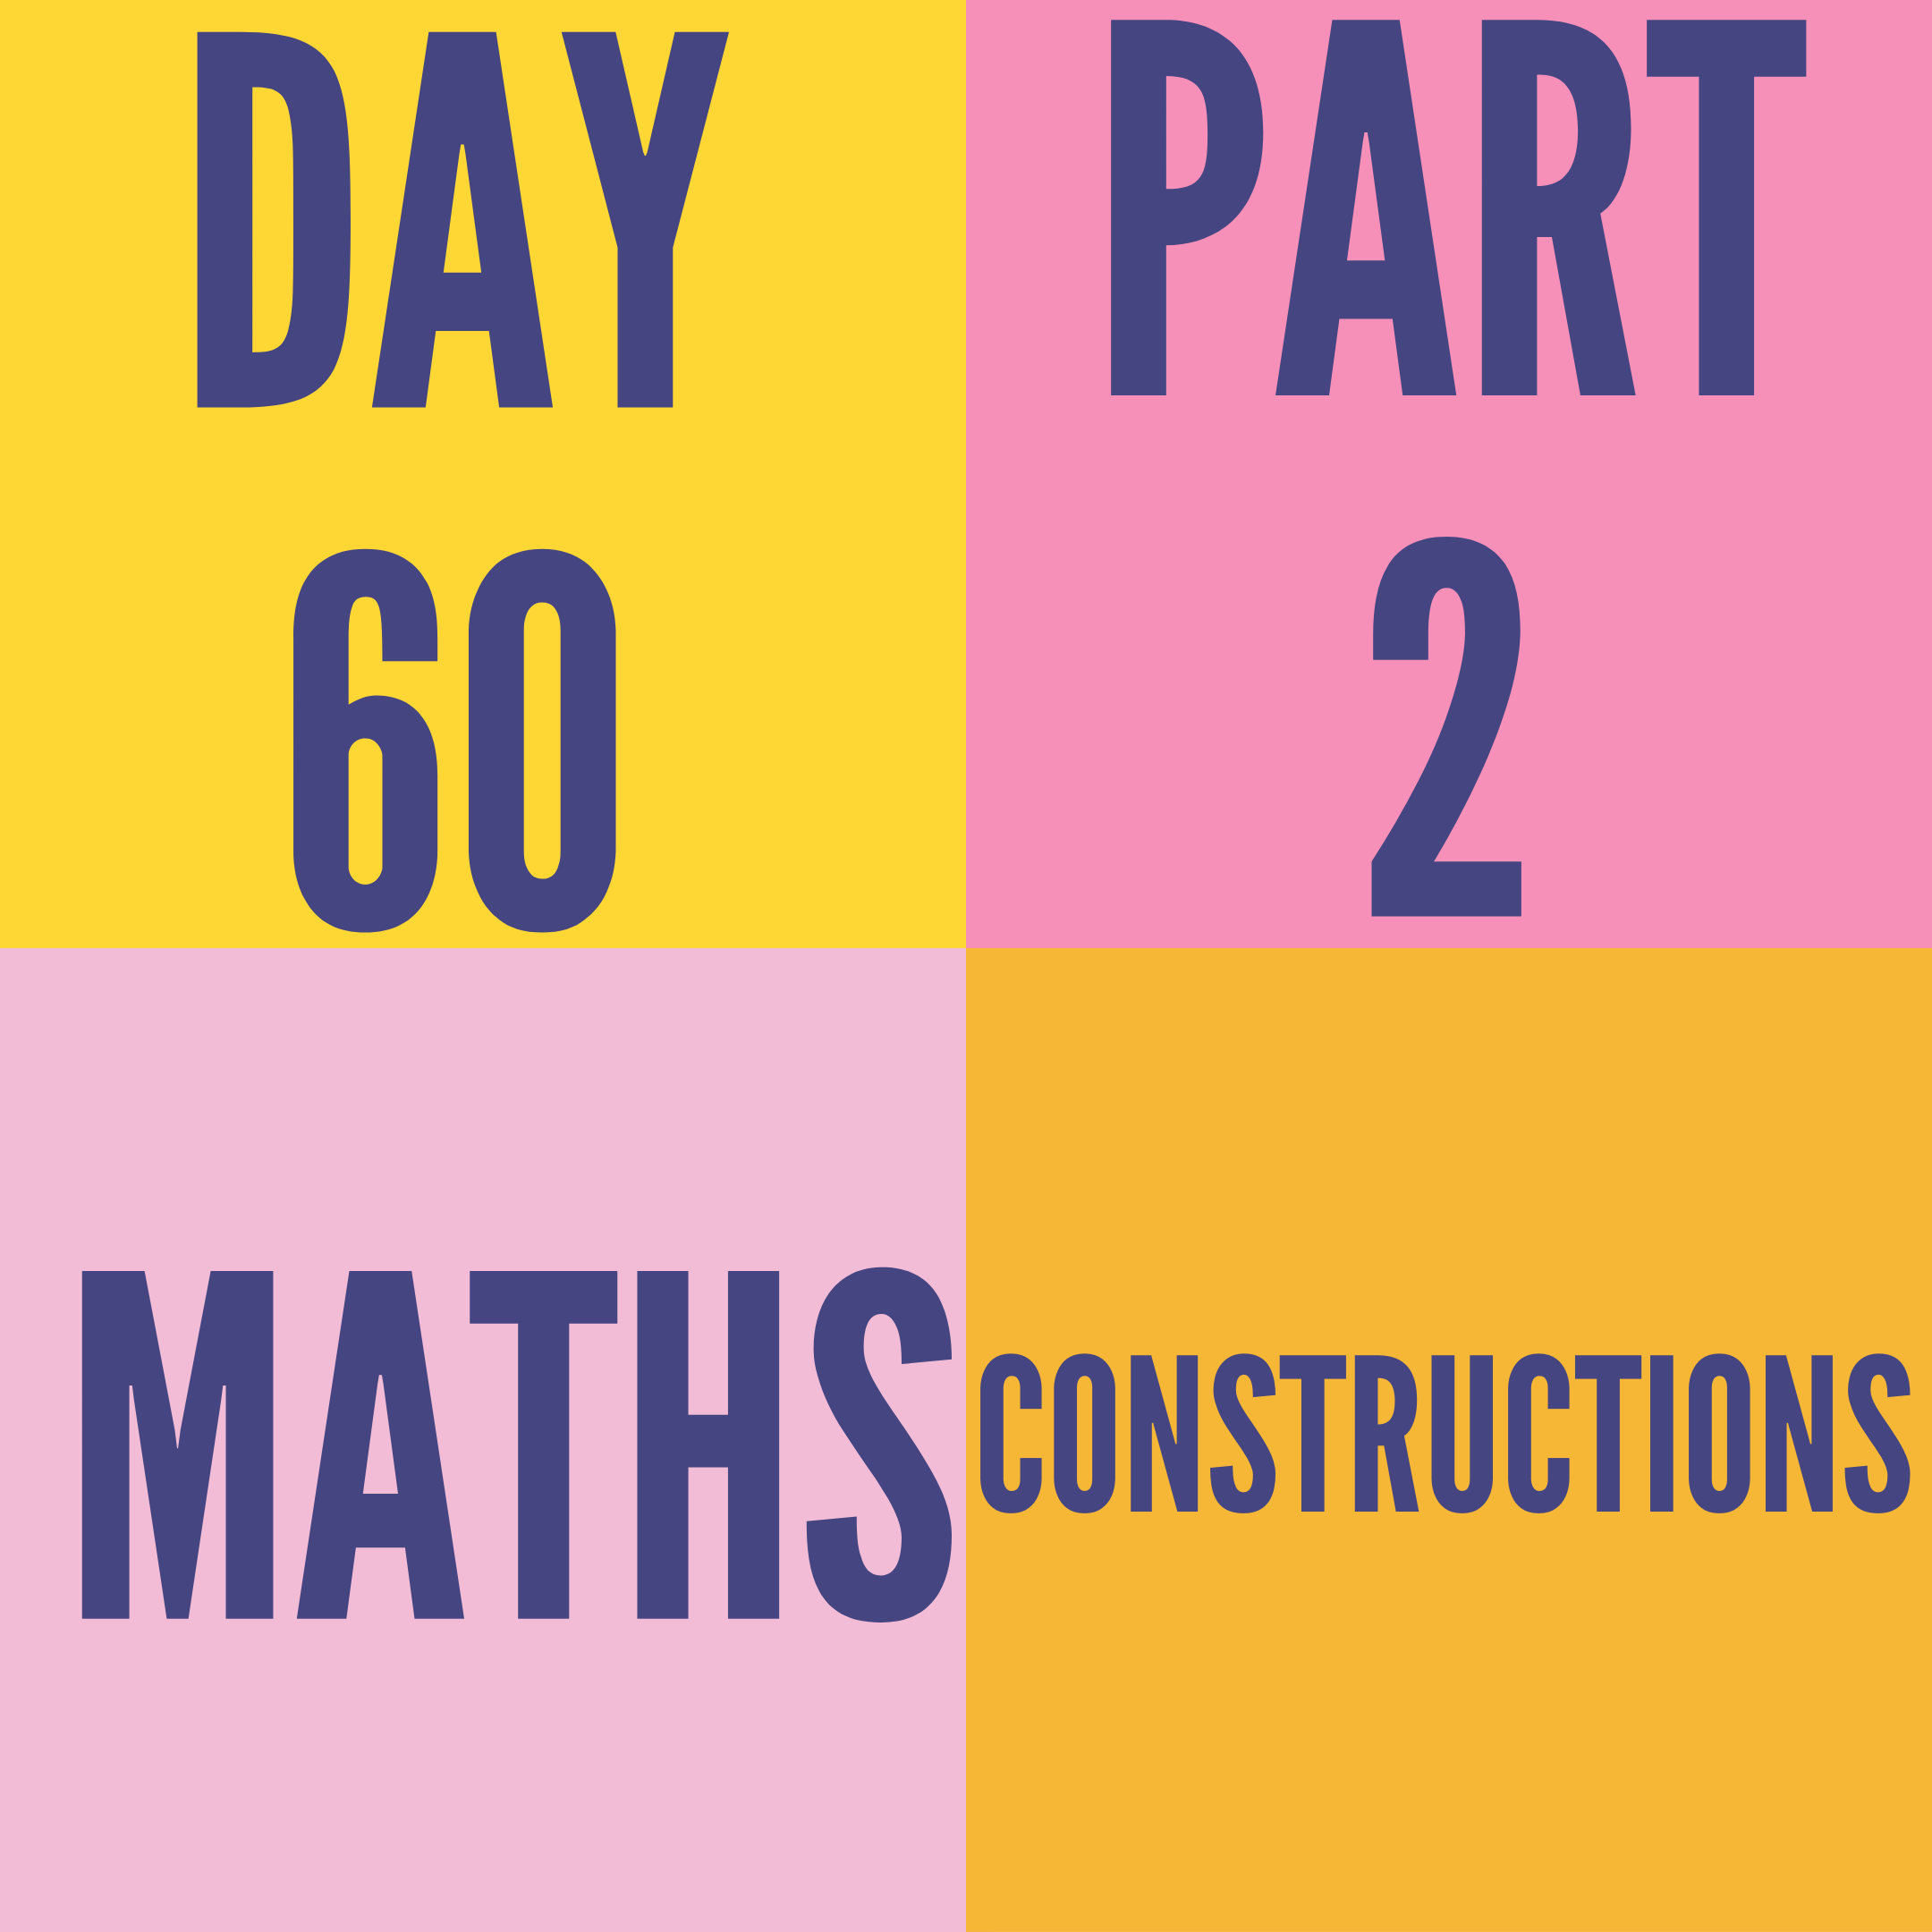 DAY-60 PART-2 CONSTRUCTIONS